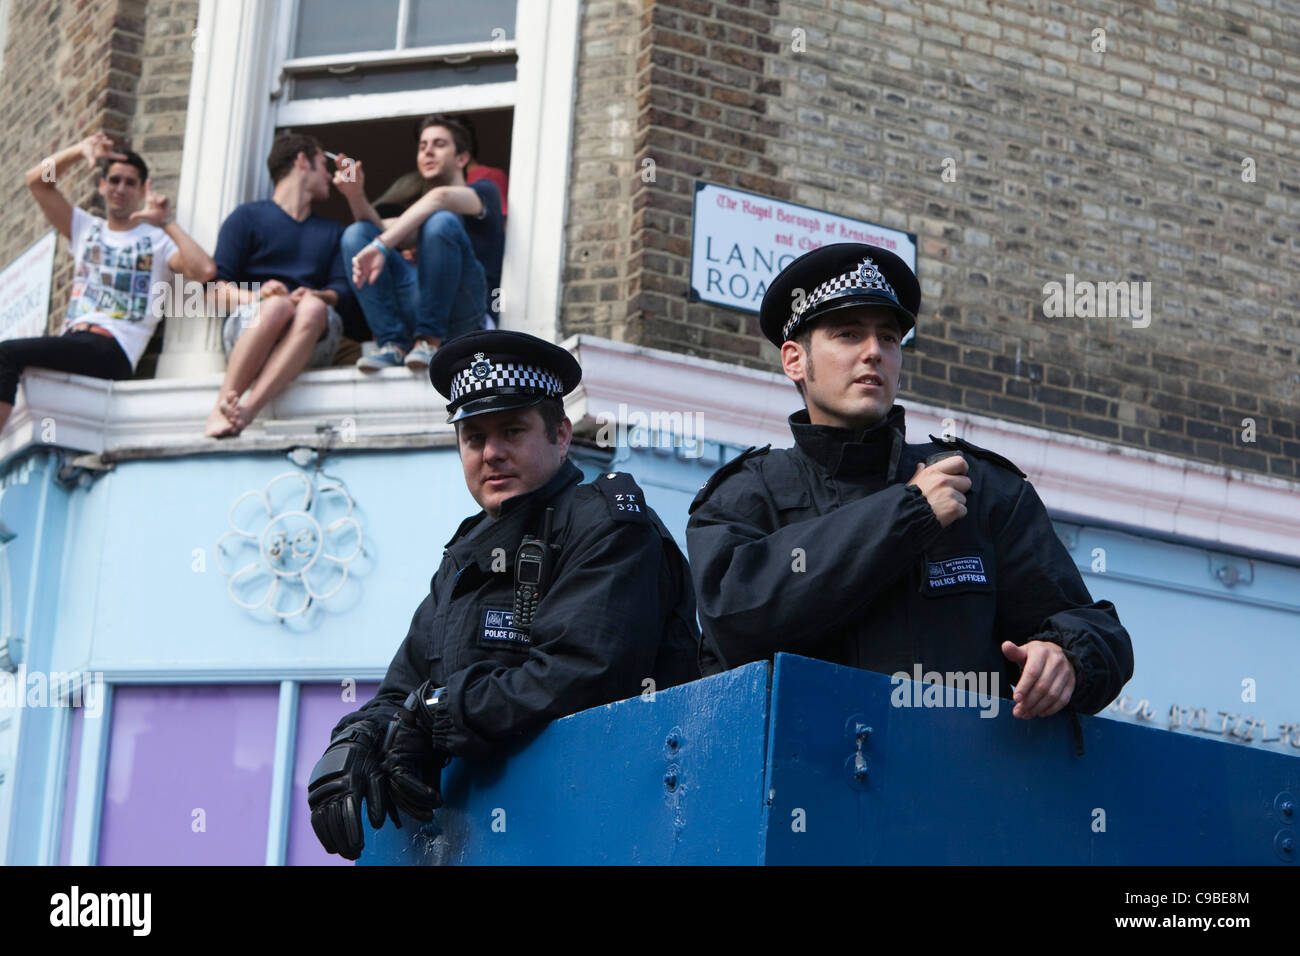 Notting Hill Carnival, Children's Day, Metropolitan Police officers observing the crowds in Ladbroke Grove Stock Photo